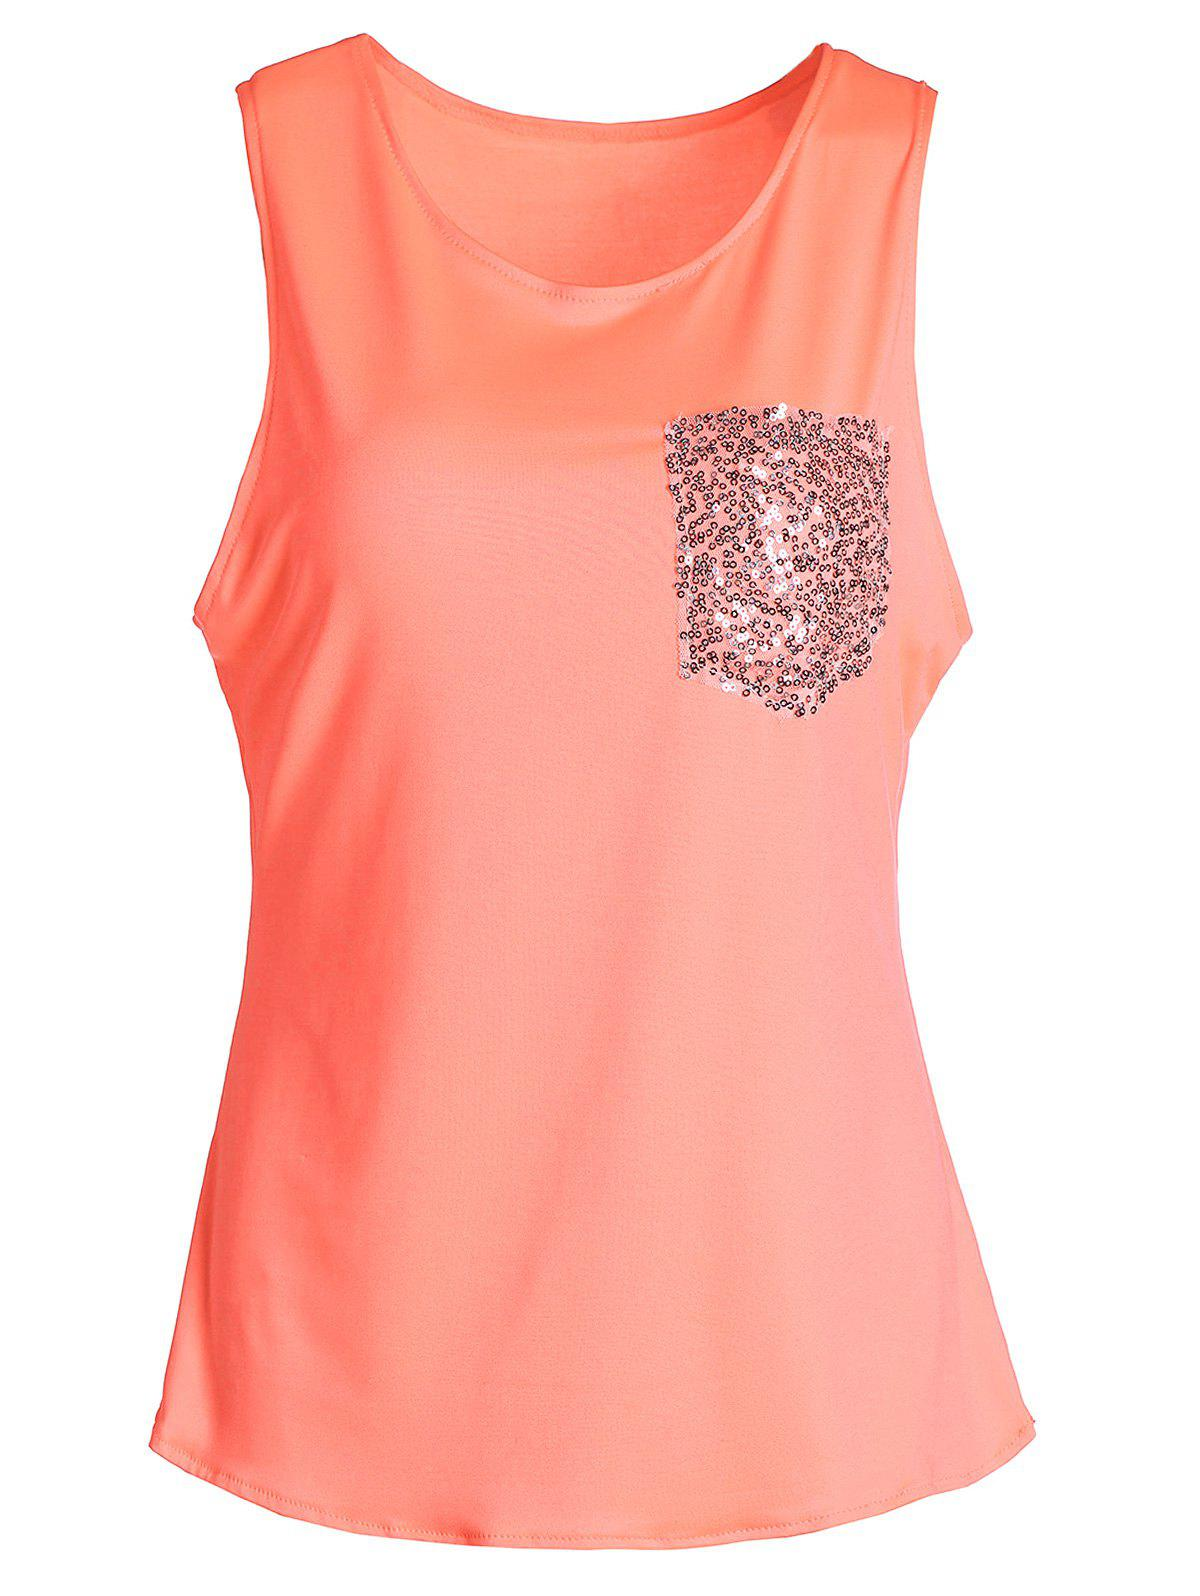 Stylish Sleeveless U-Neck Sequined Women's Tank Top - ORANGE XL